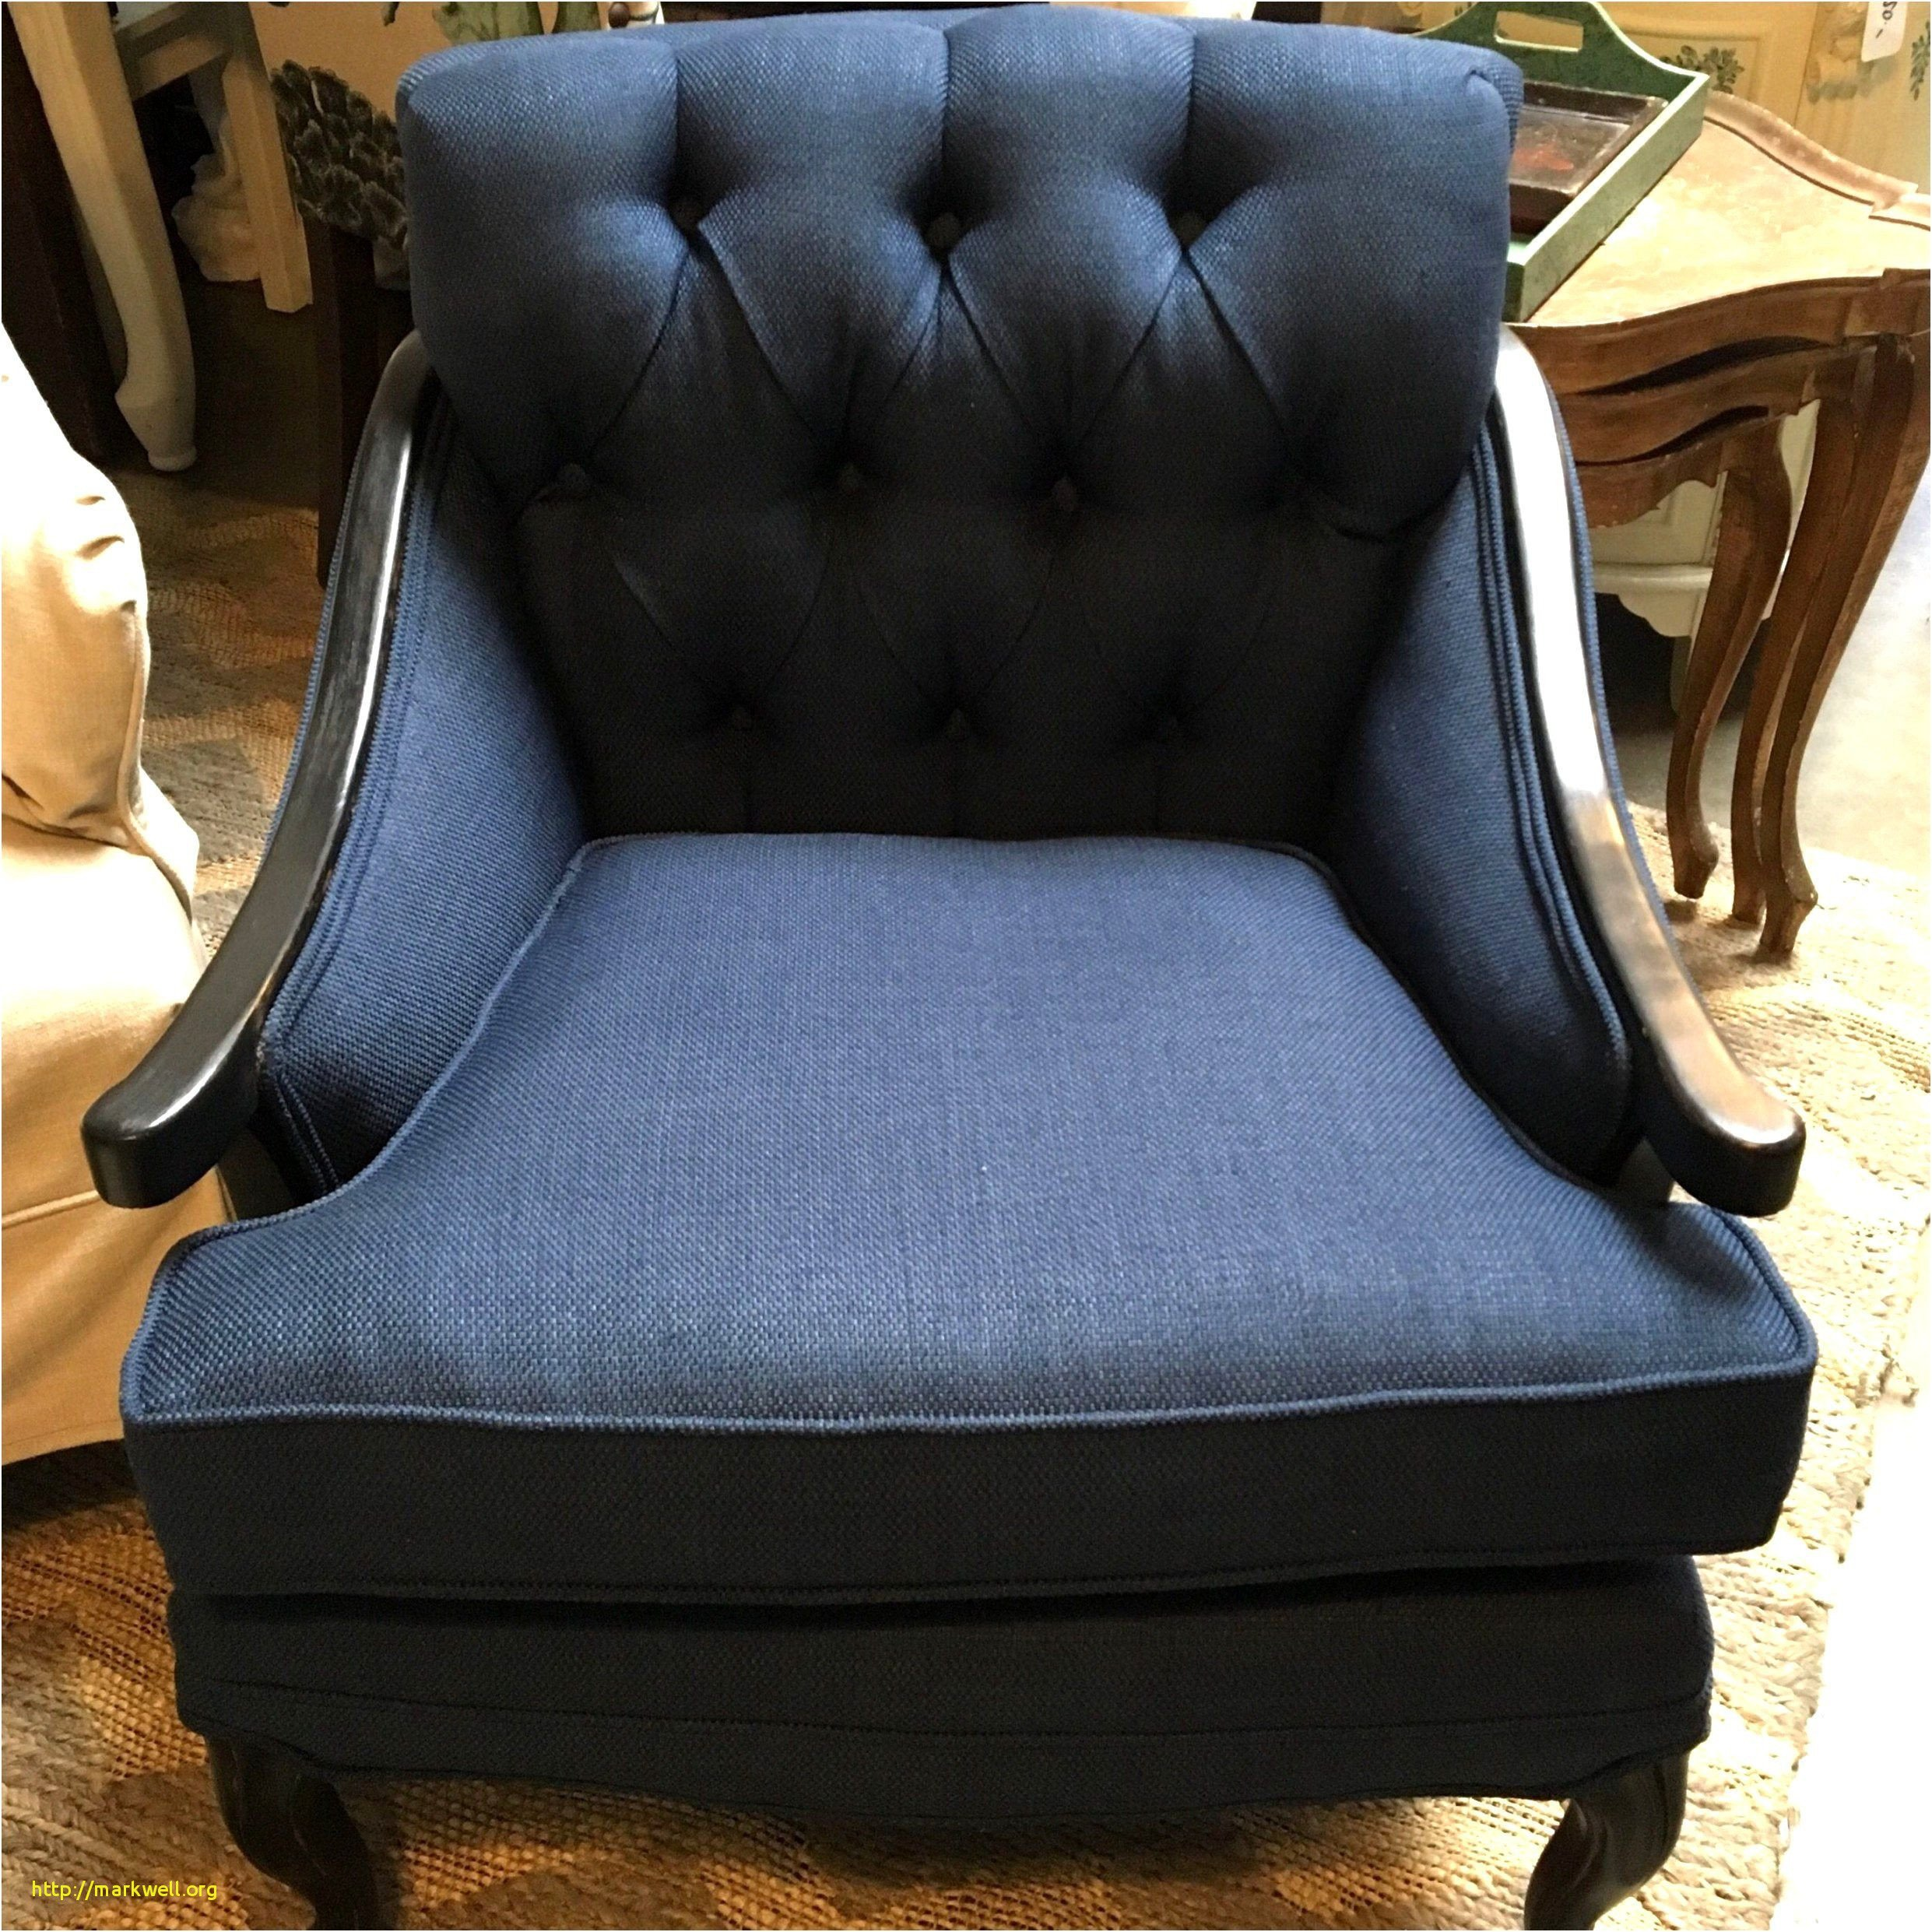 fy reading chairs lovely 37 lovely fy chairs for bedroom of fy reading chairs